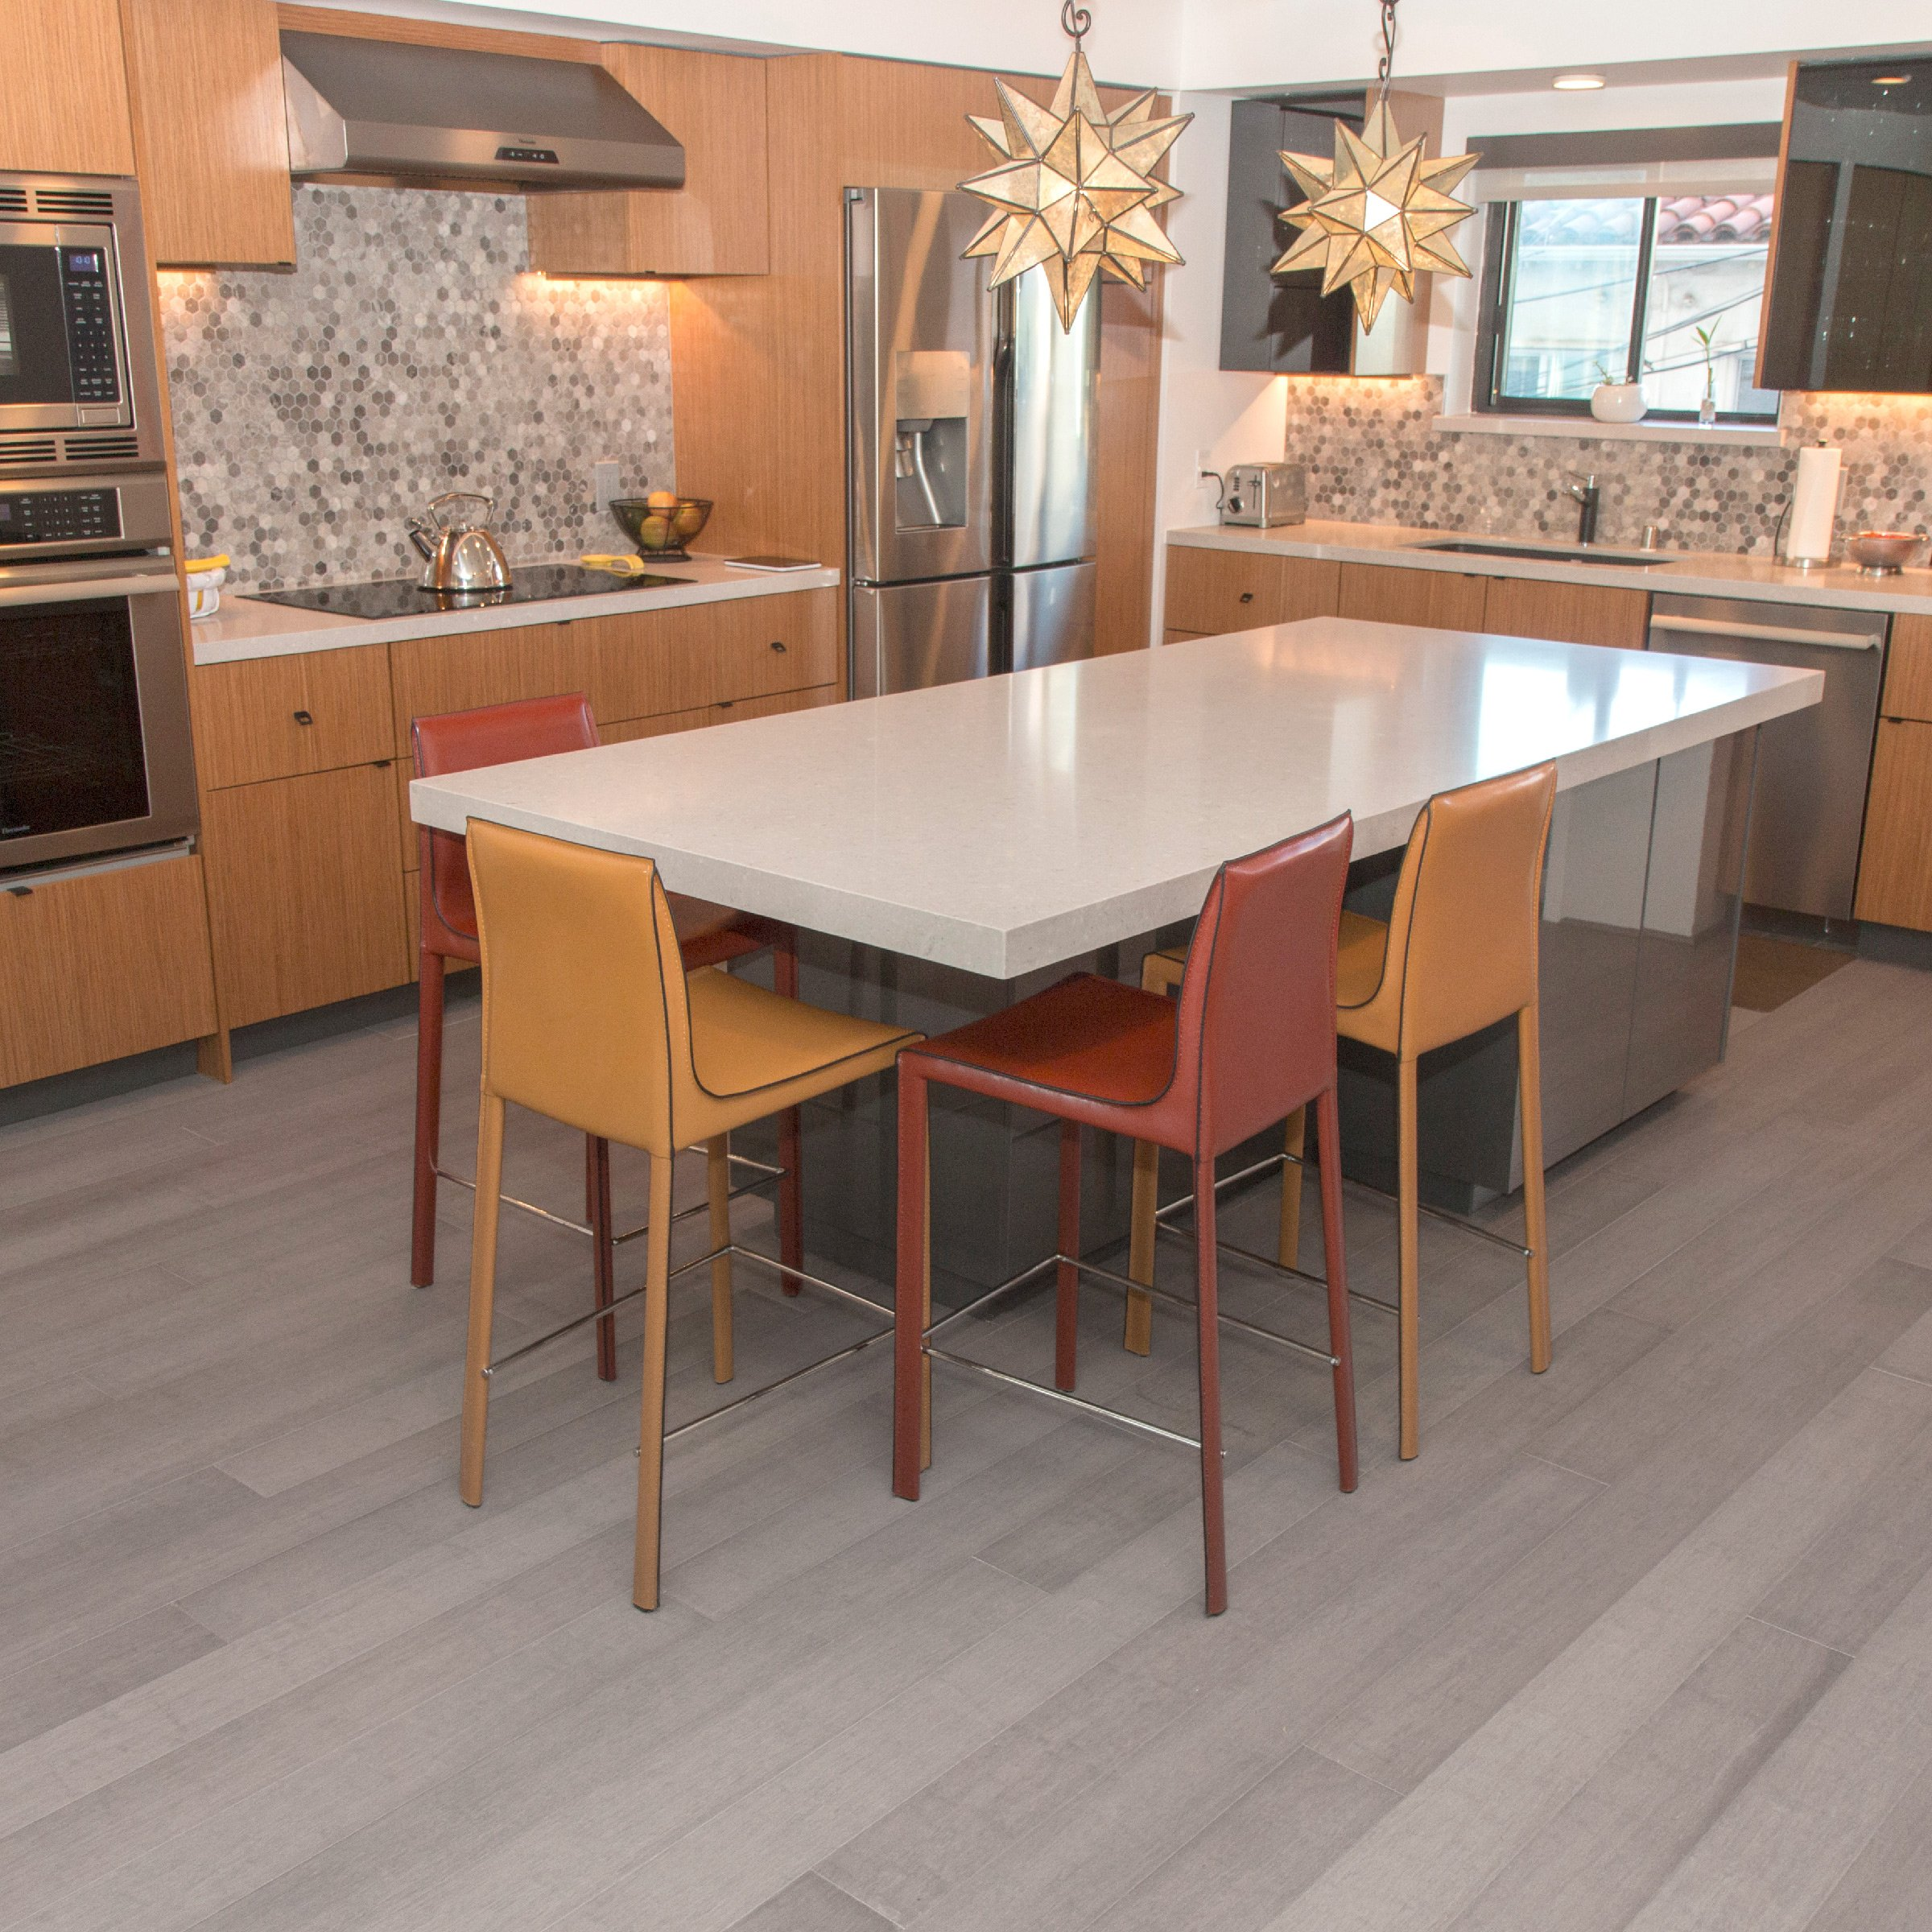 Cali Bamboo - Solid Wide Click Bamboo Flooring, Vintage Moonlight Gray - Sample Size 8'' L x 5 1/8'' W x 9/16'' H